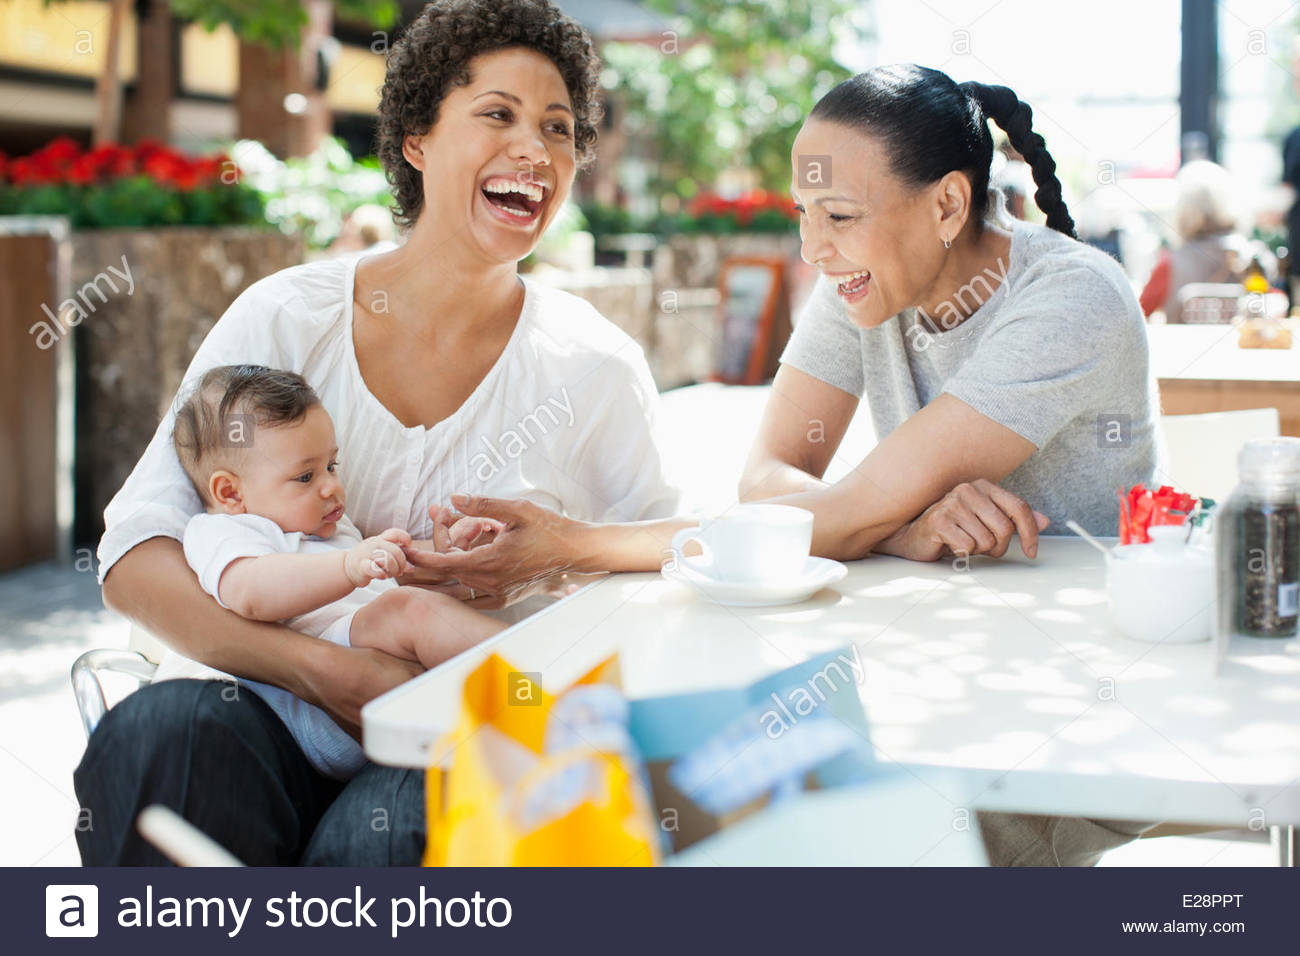 Mother, son and friend at outdoor cafe - Stock Image